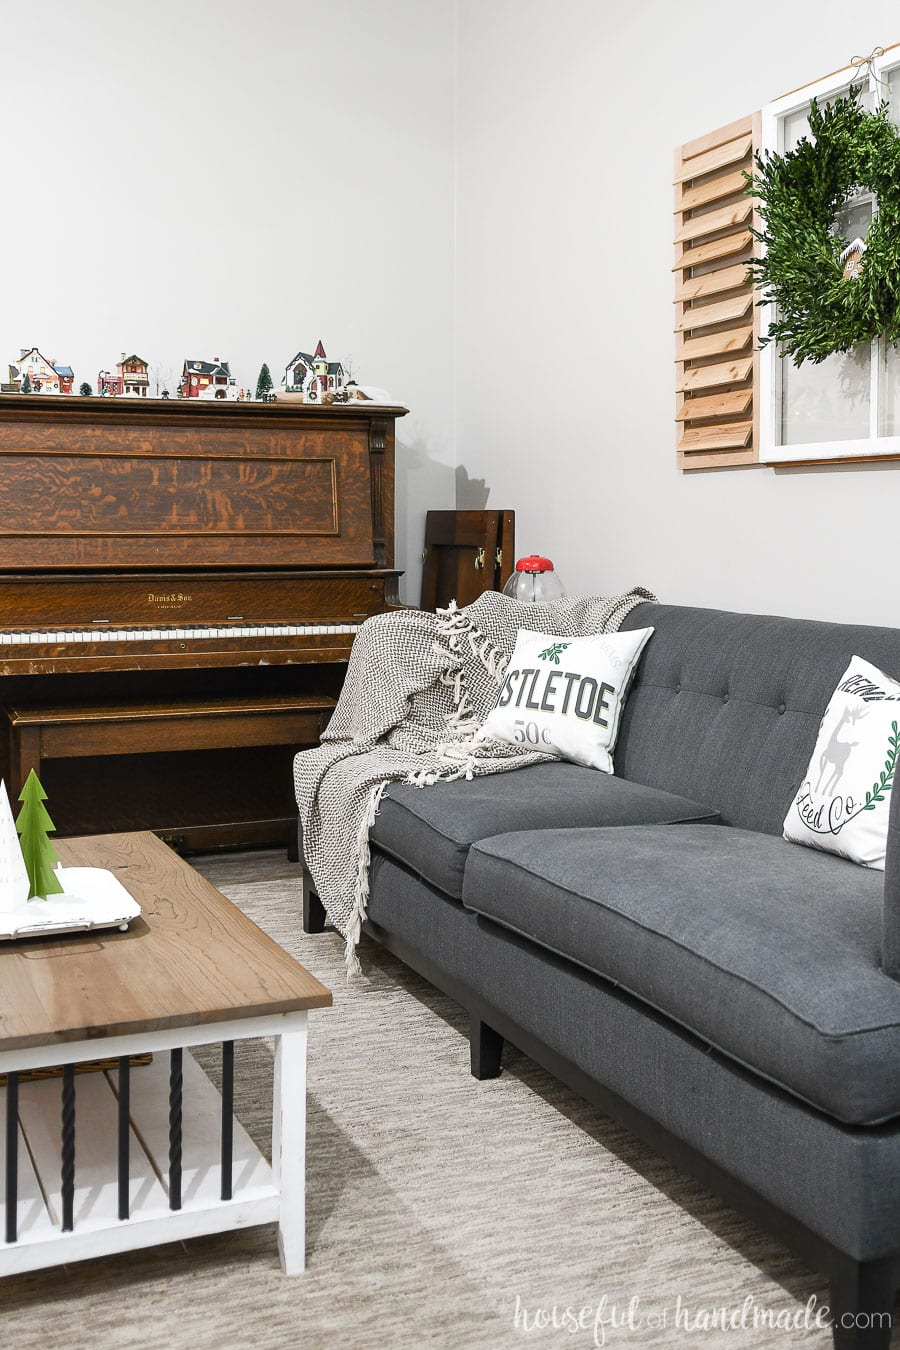 View of the sofa and piano decorated with classic Christmas decor.